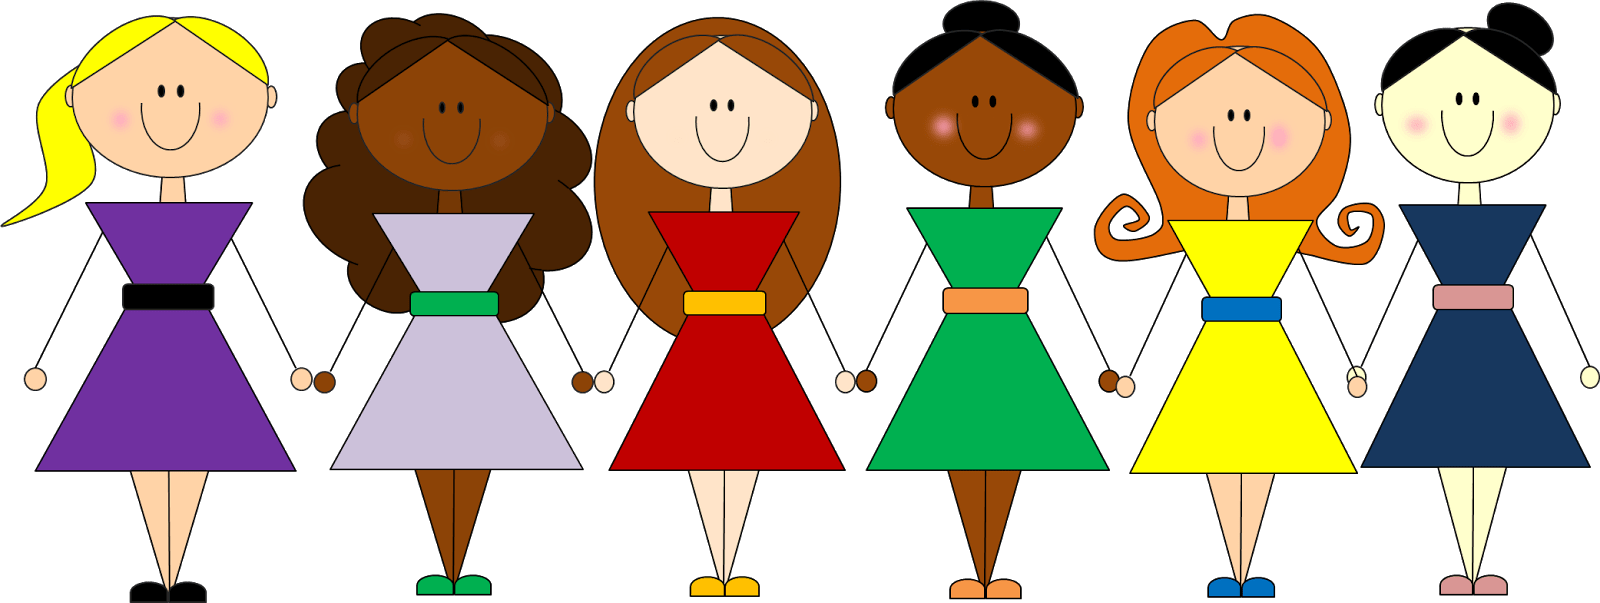 hight resolution of friendship clipart heritage group work clip arts